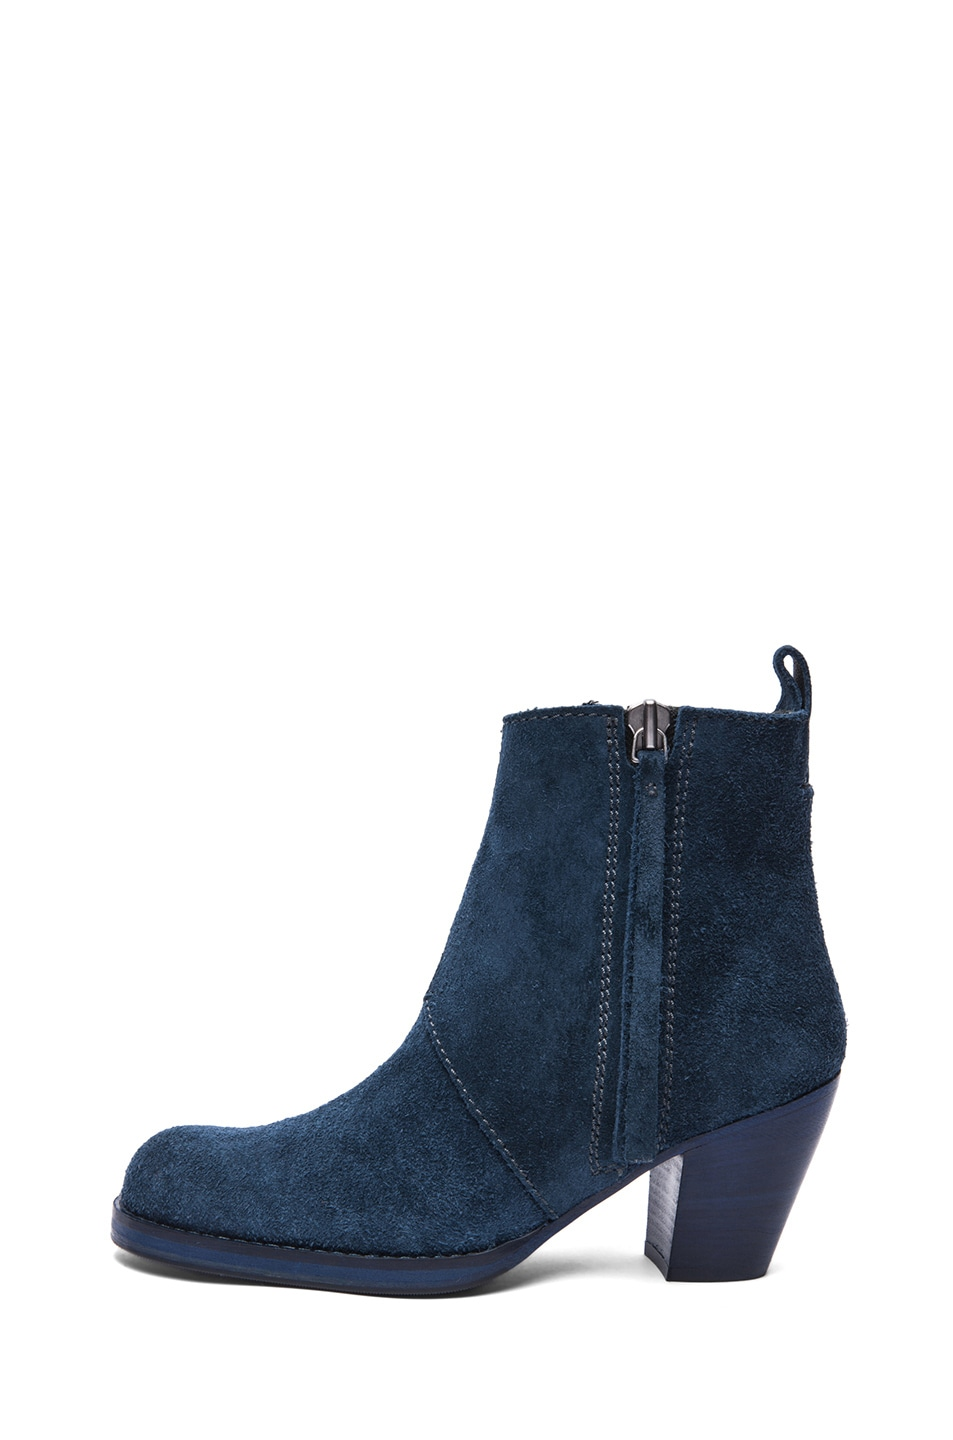 Image 1 of Acne Studios Pistol Suede Booties in Navy